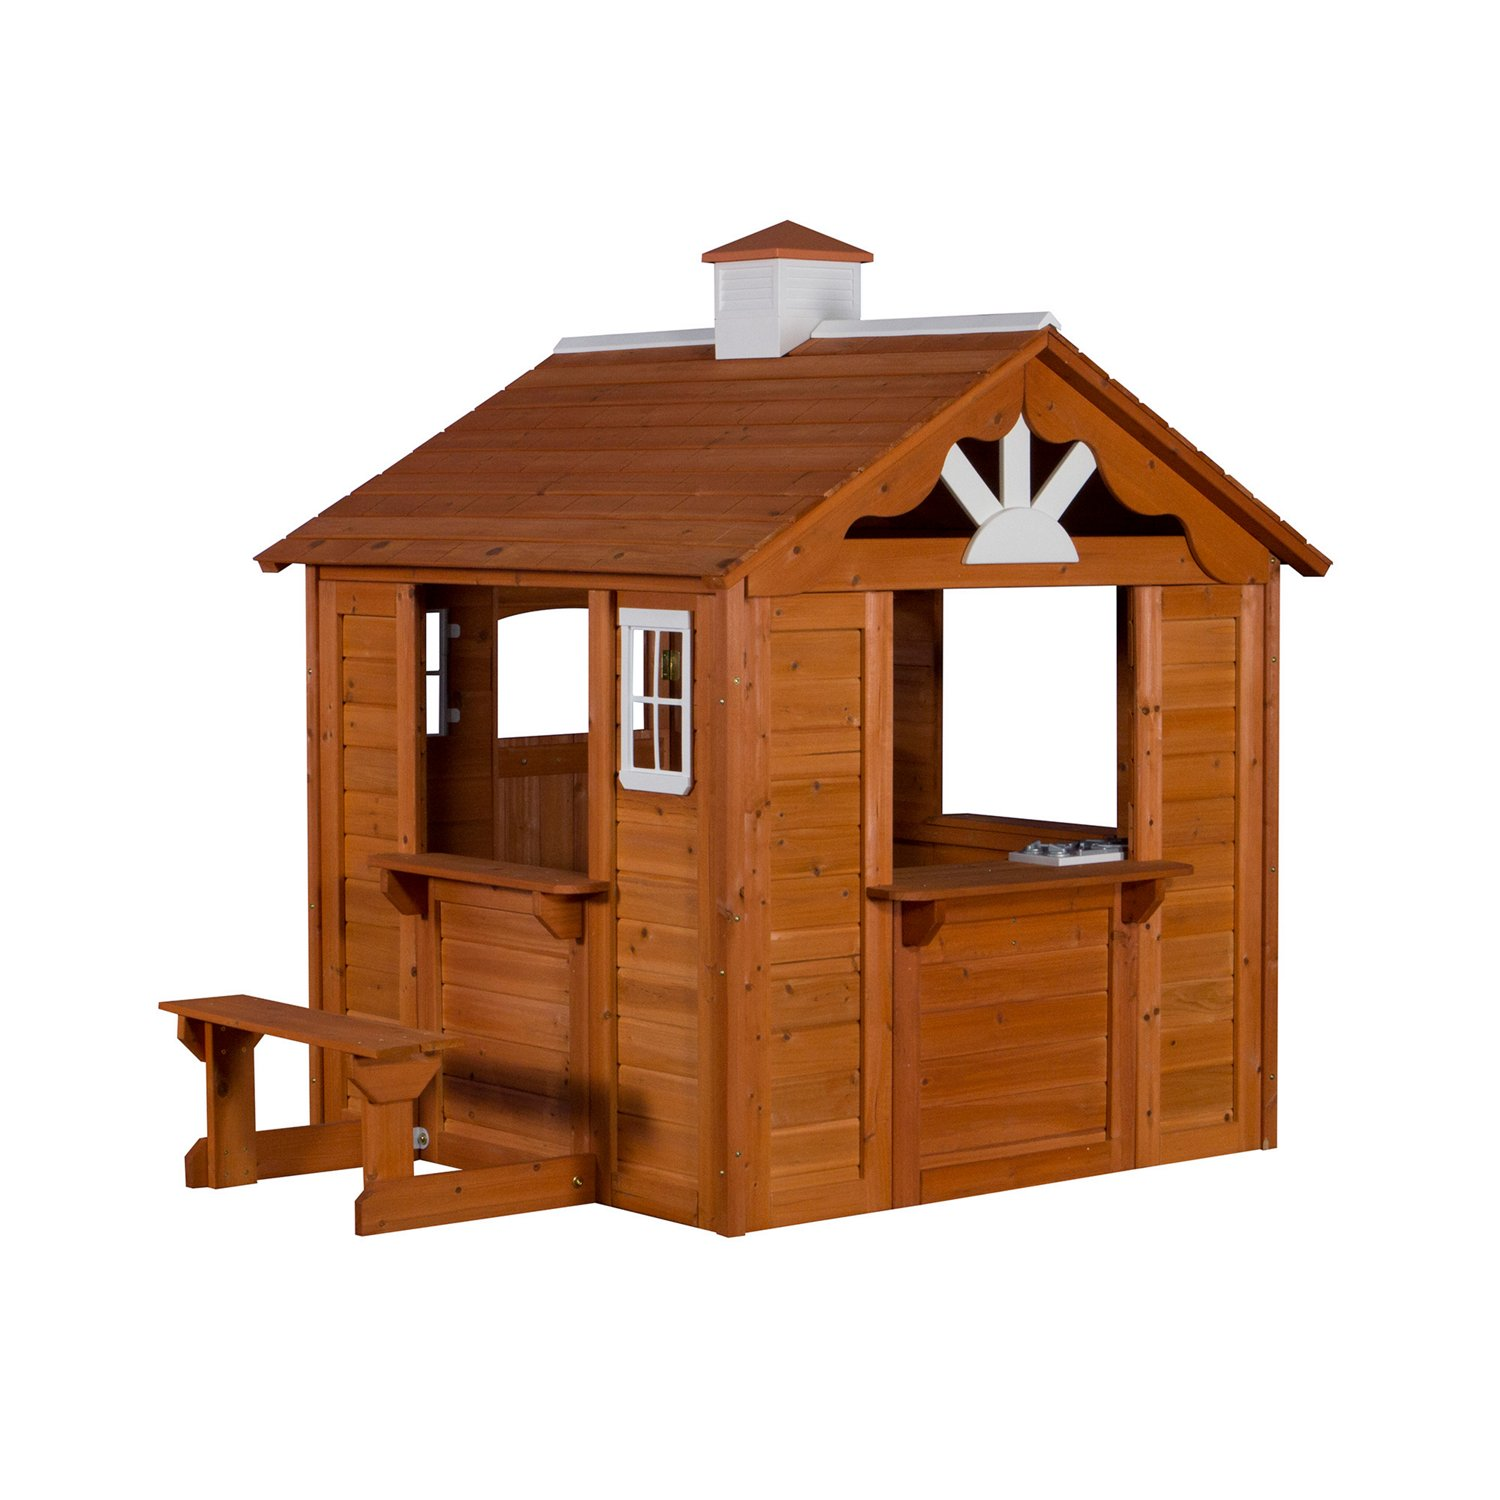 backyard discovery summer cottage playhouse academy rh academy com backyard discovery playhouse cedar backyard discovery playhouse cedar